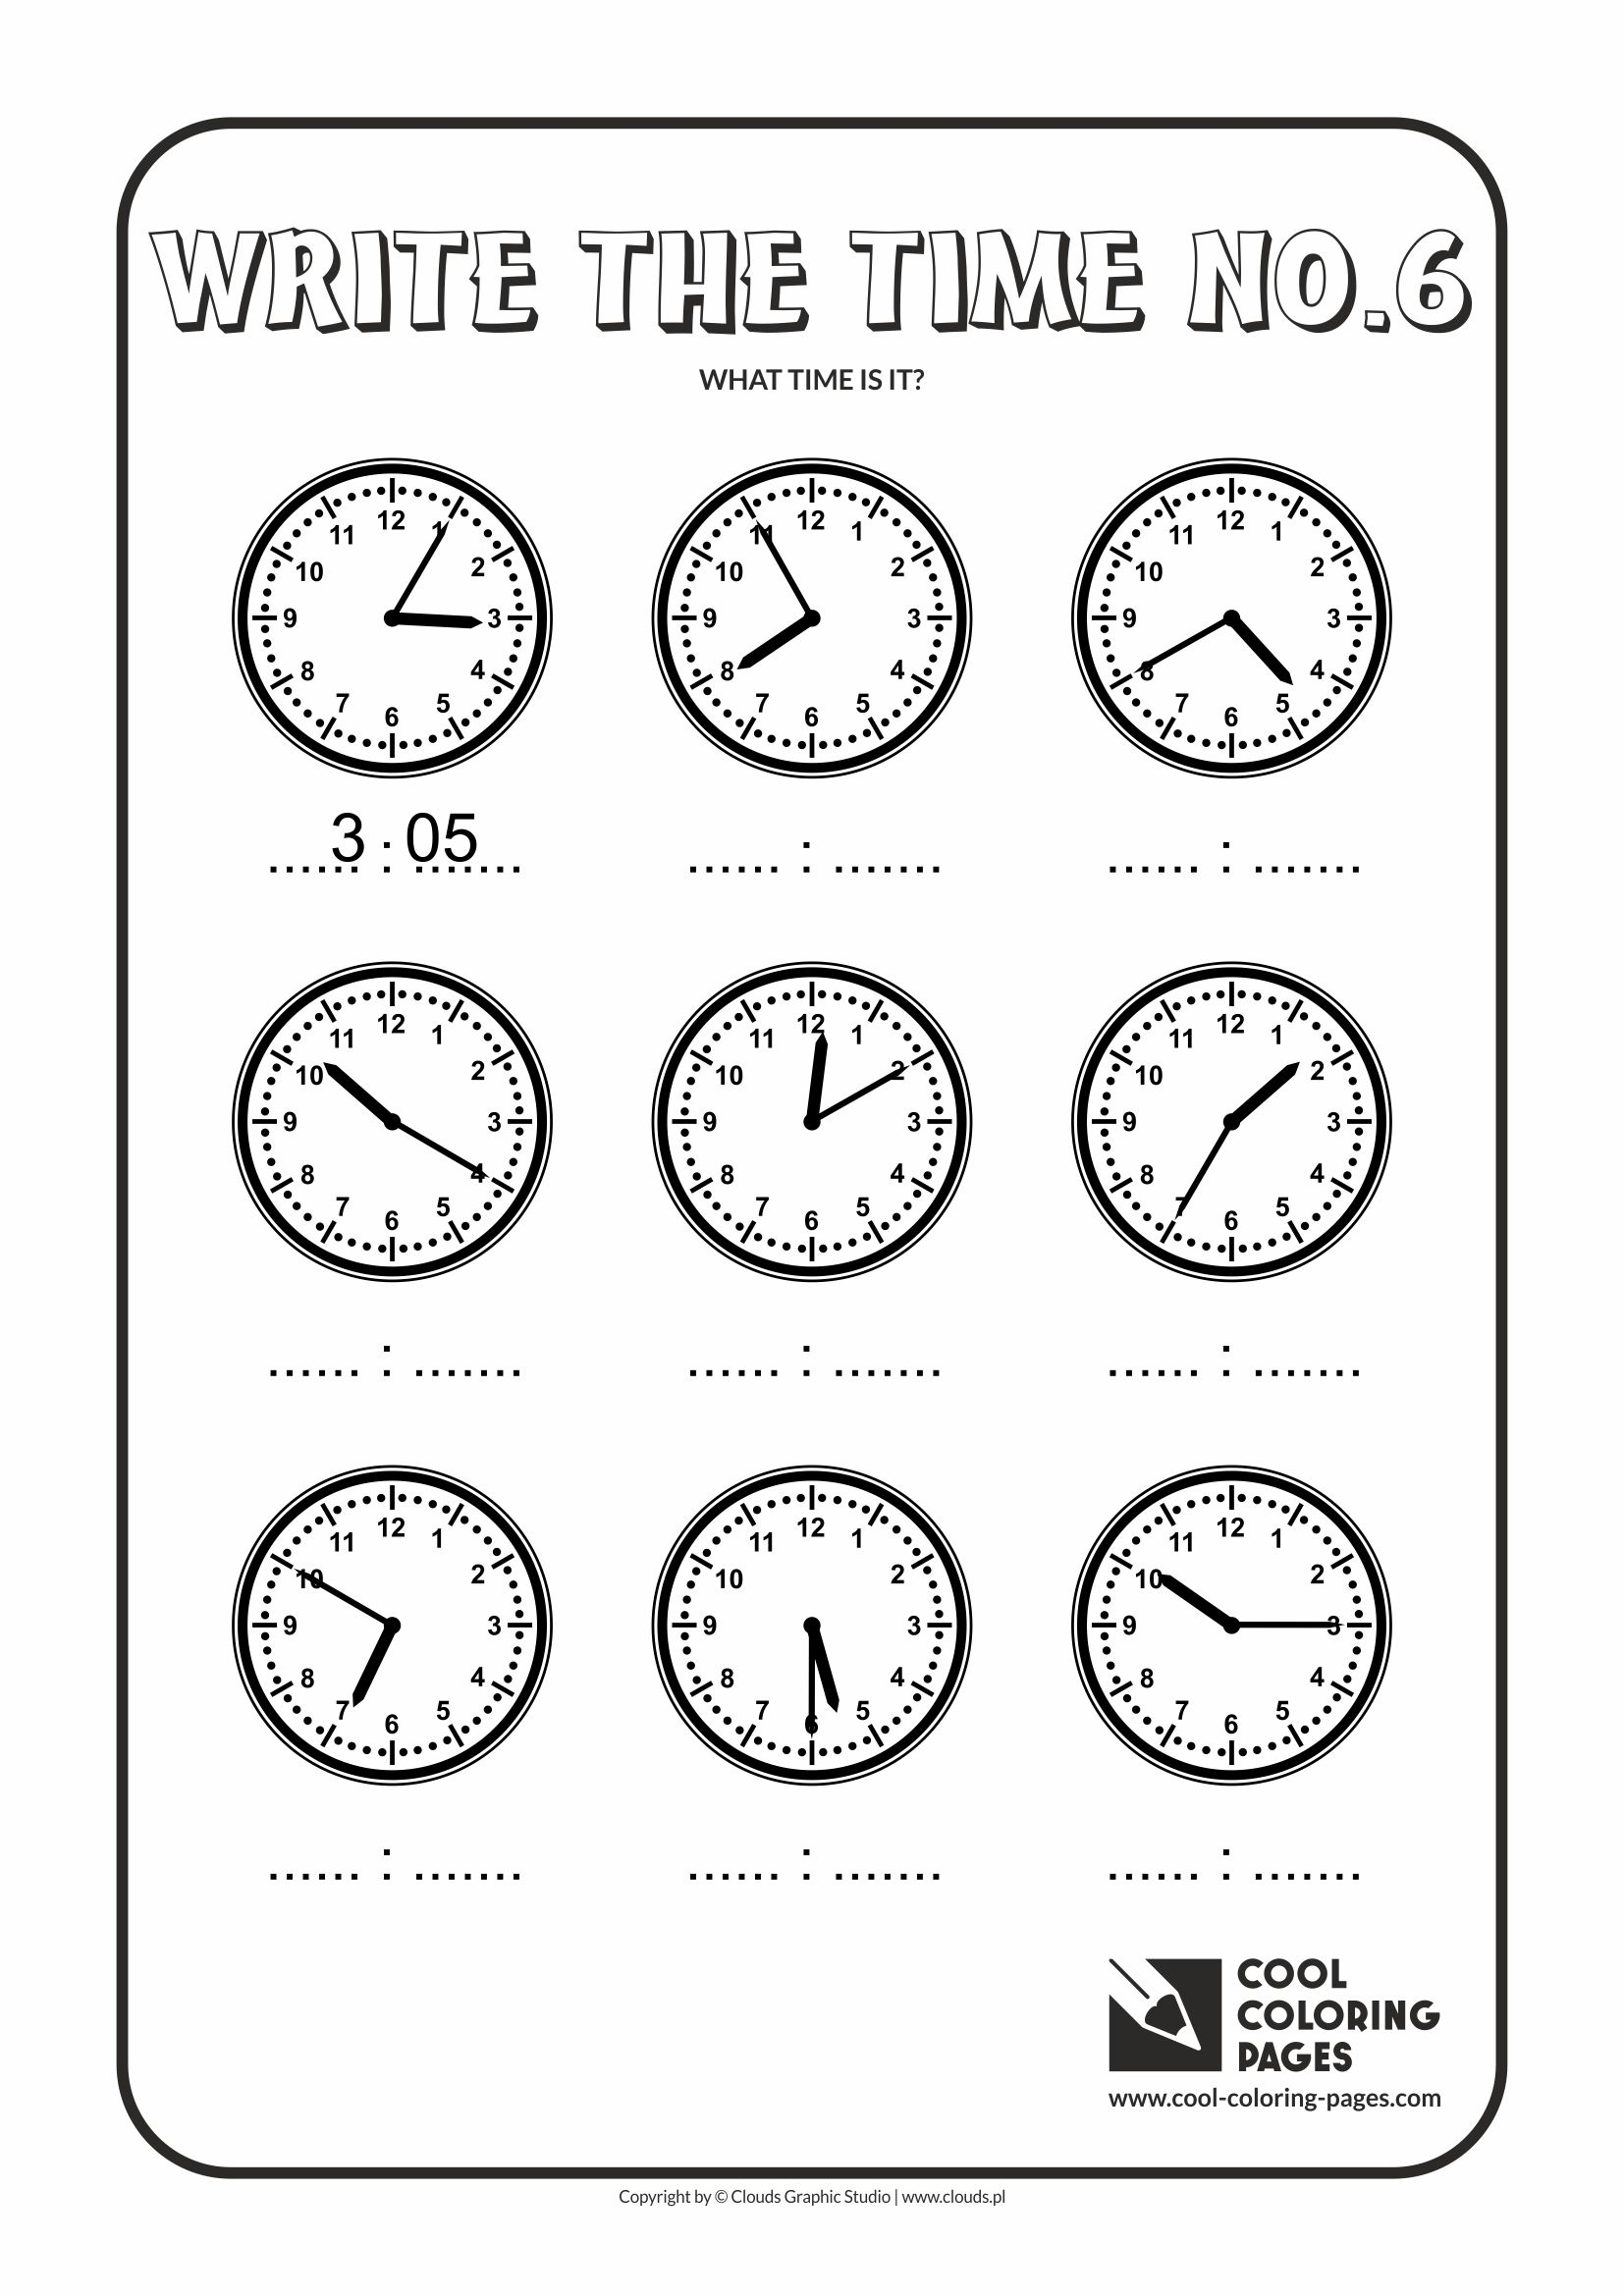 Cool Coloring Pages Write The Time No 6